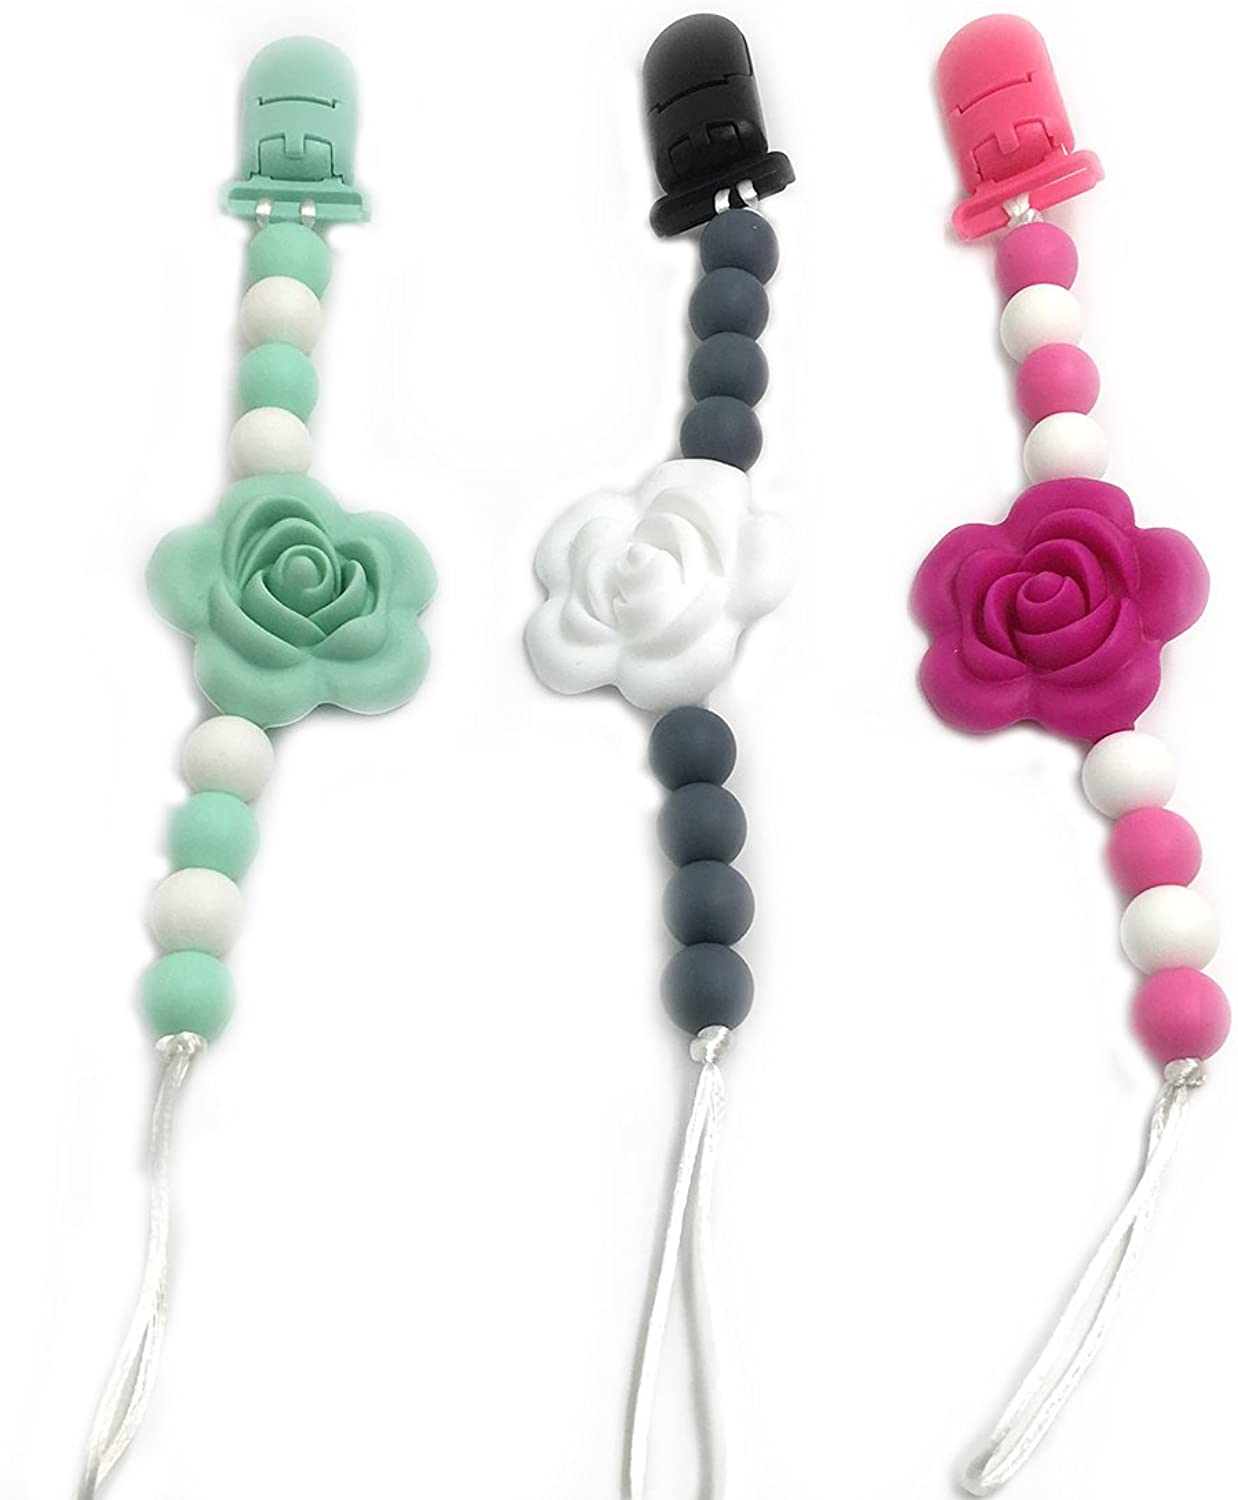 Amyster 3pcs Baby Silicone Teether Beads Flower Shaped Silicone Baby Pacifier Clip Toodler BPA FreeFood Grade Silicone Beads EcoFriendly DIY Baby Teether Toy (color 31)